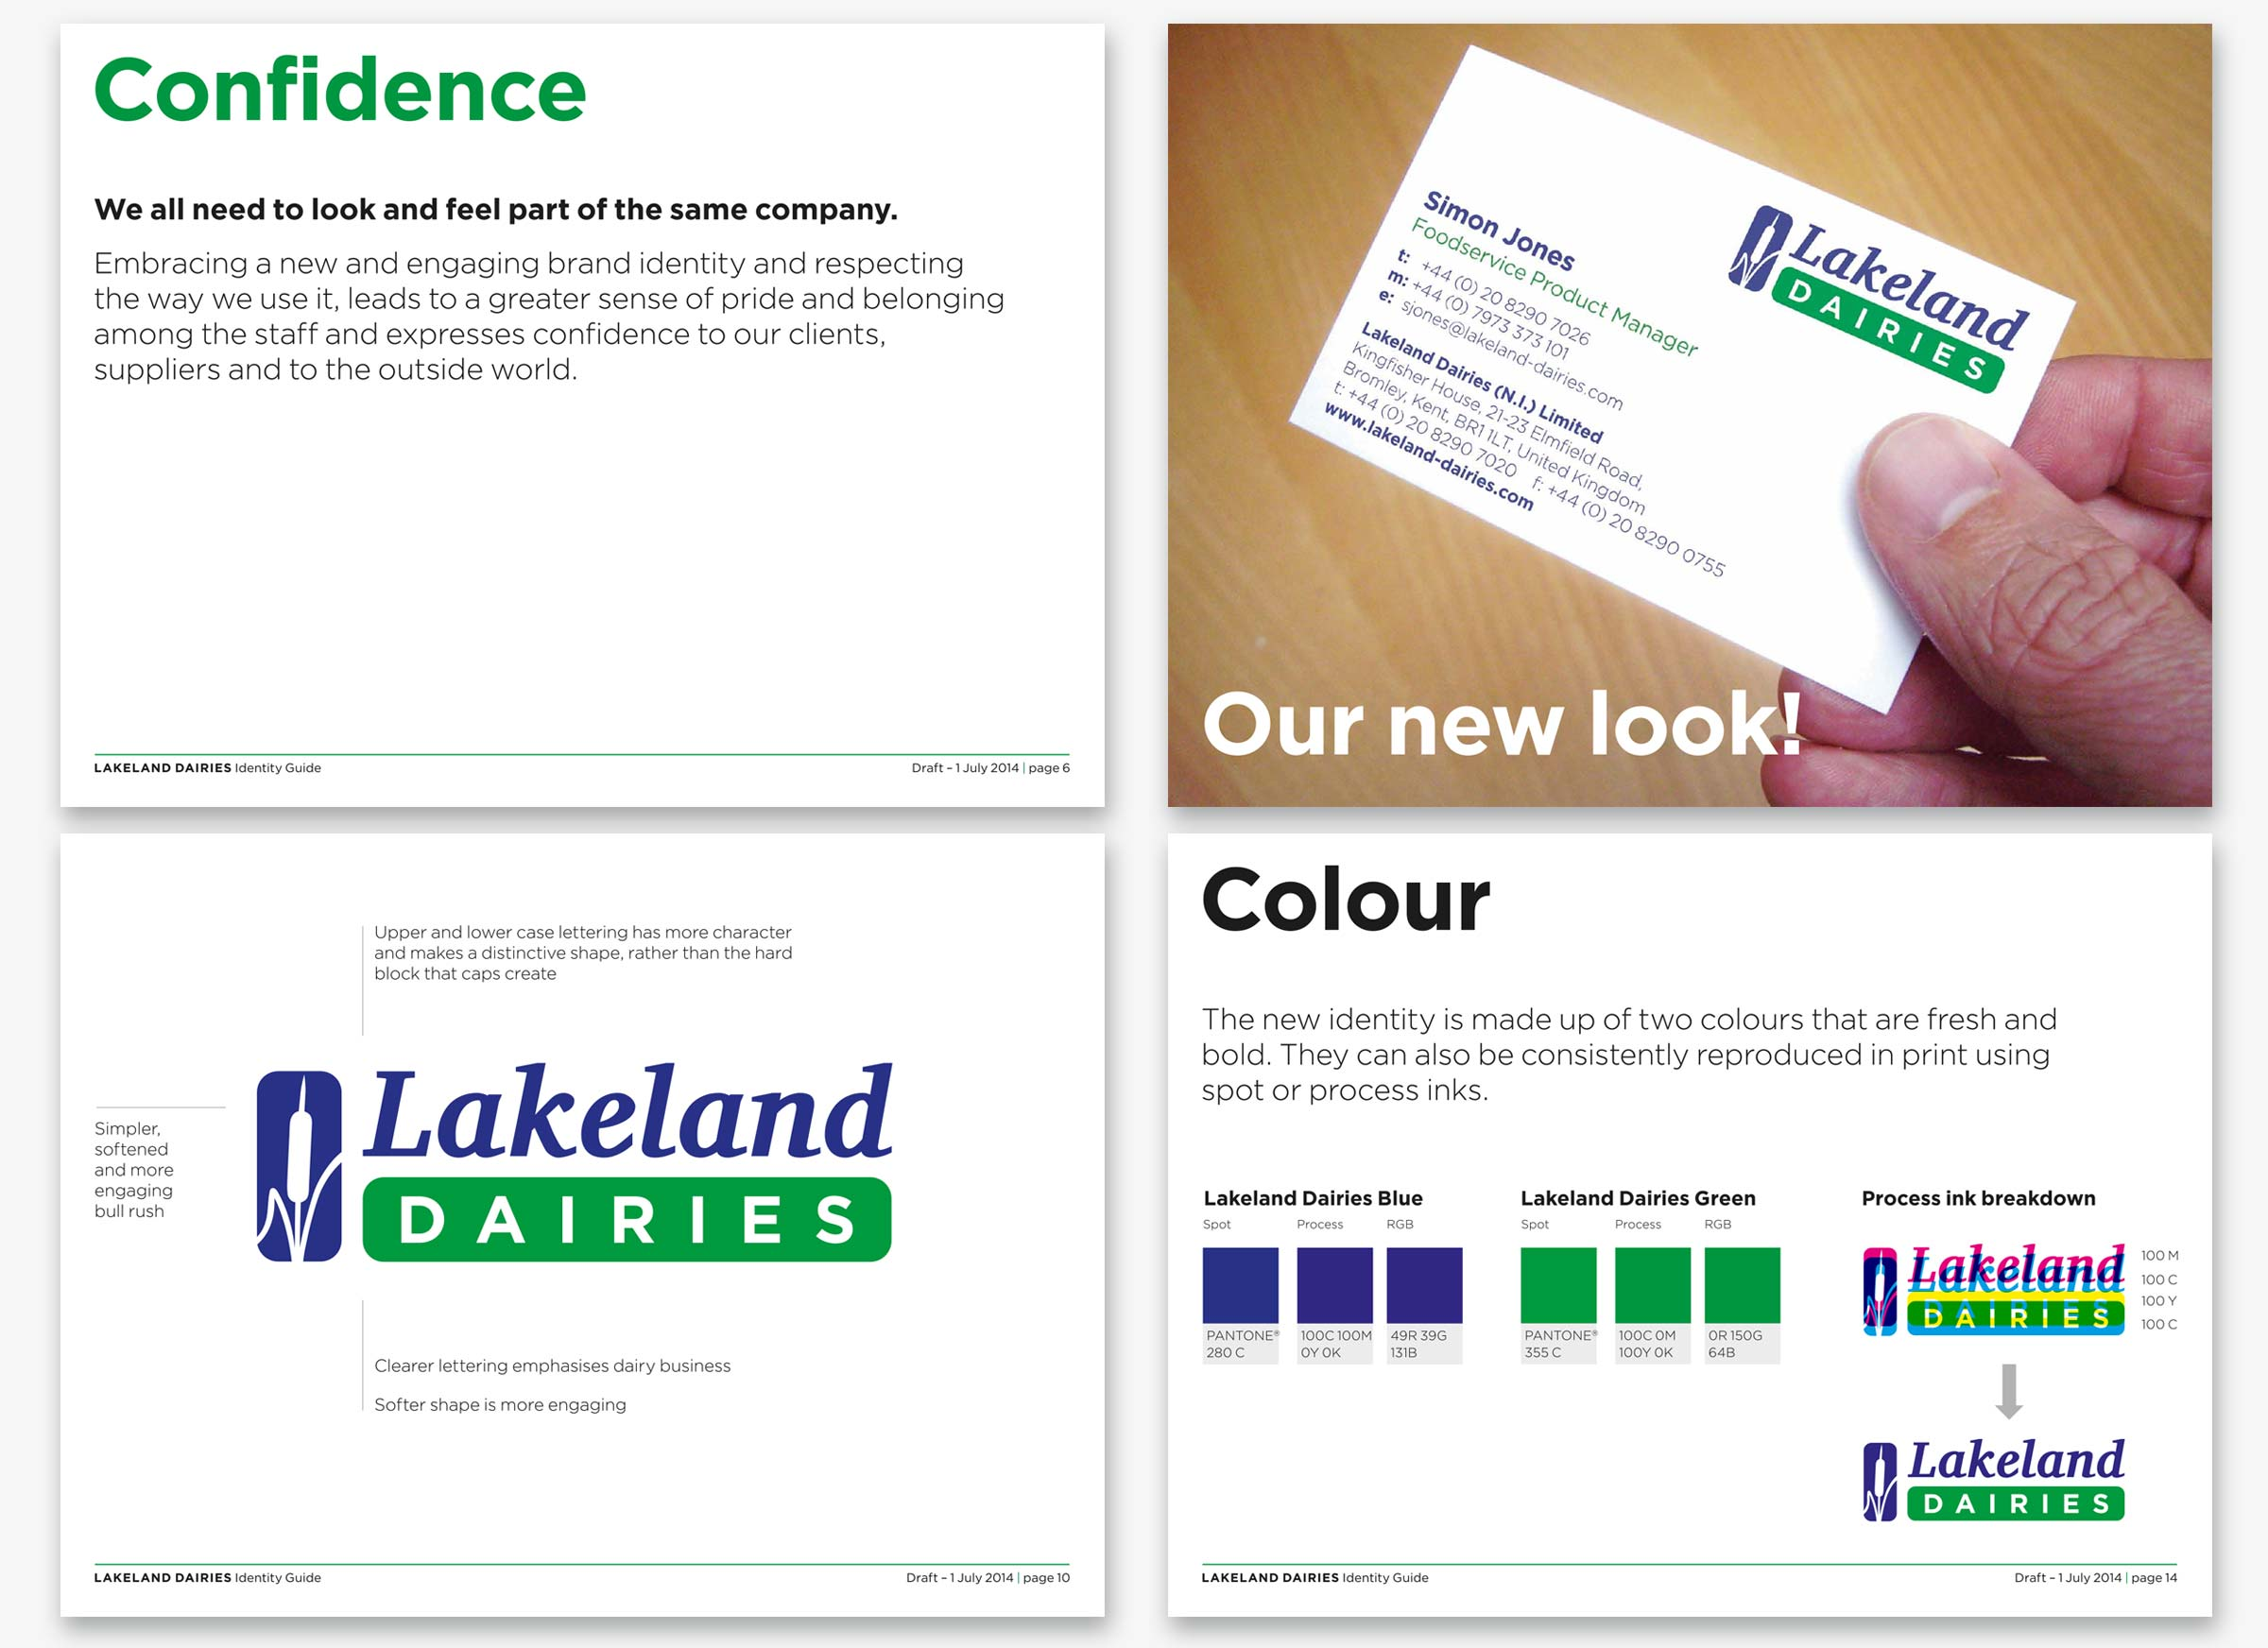 Lakeland Dairies brand guidelines